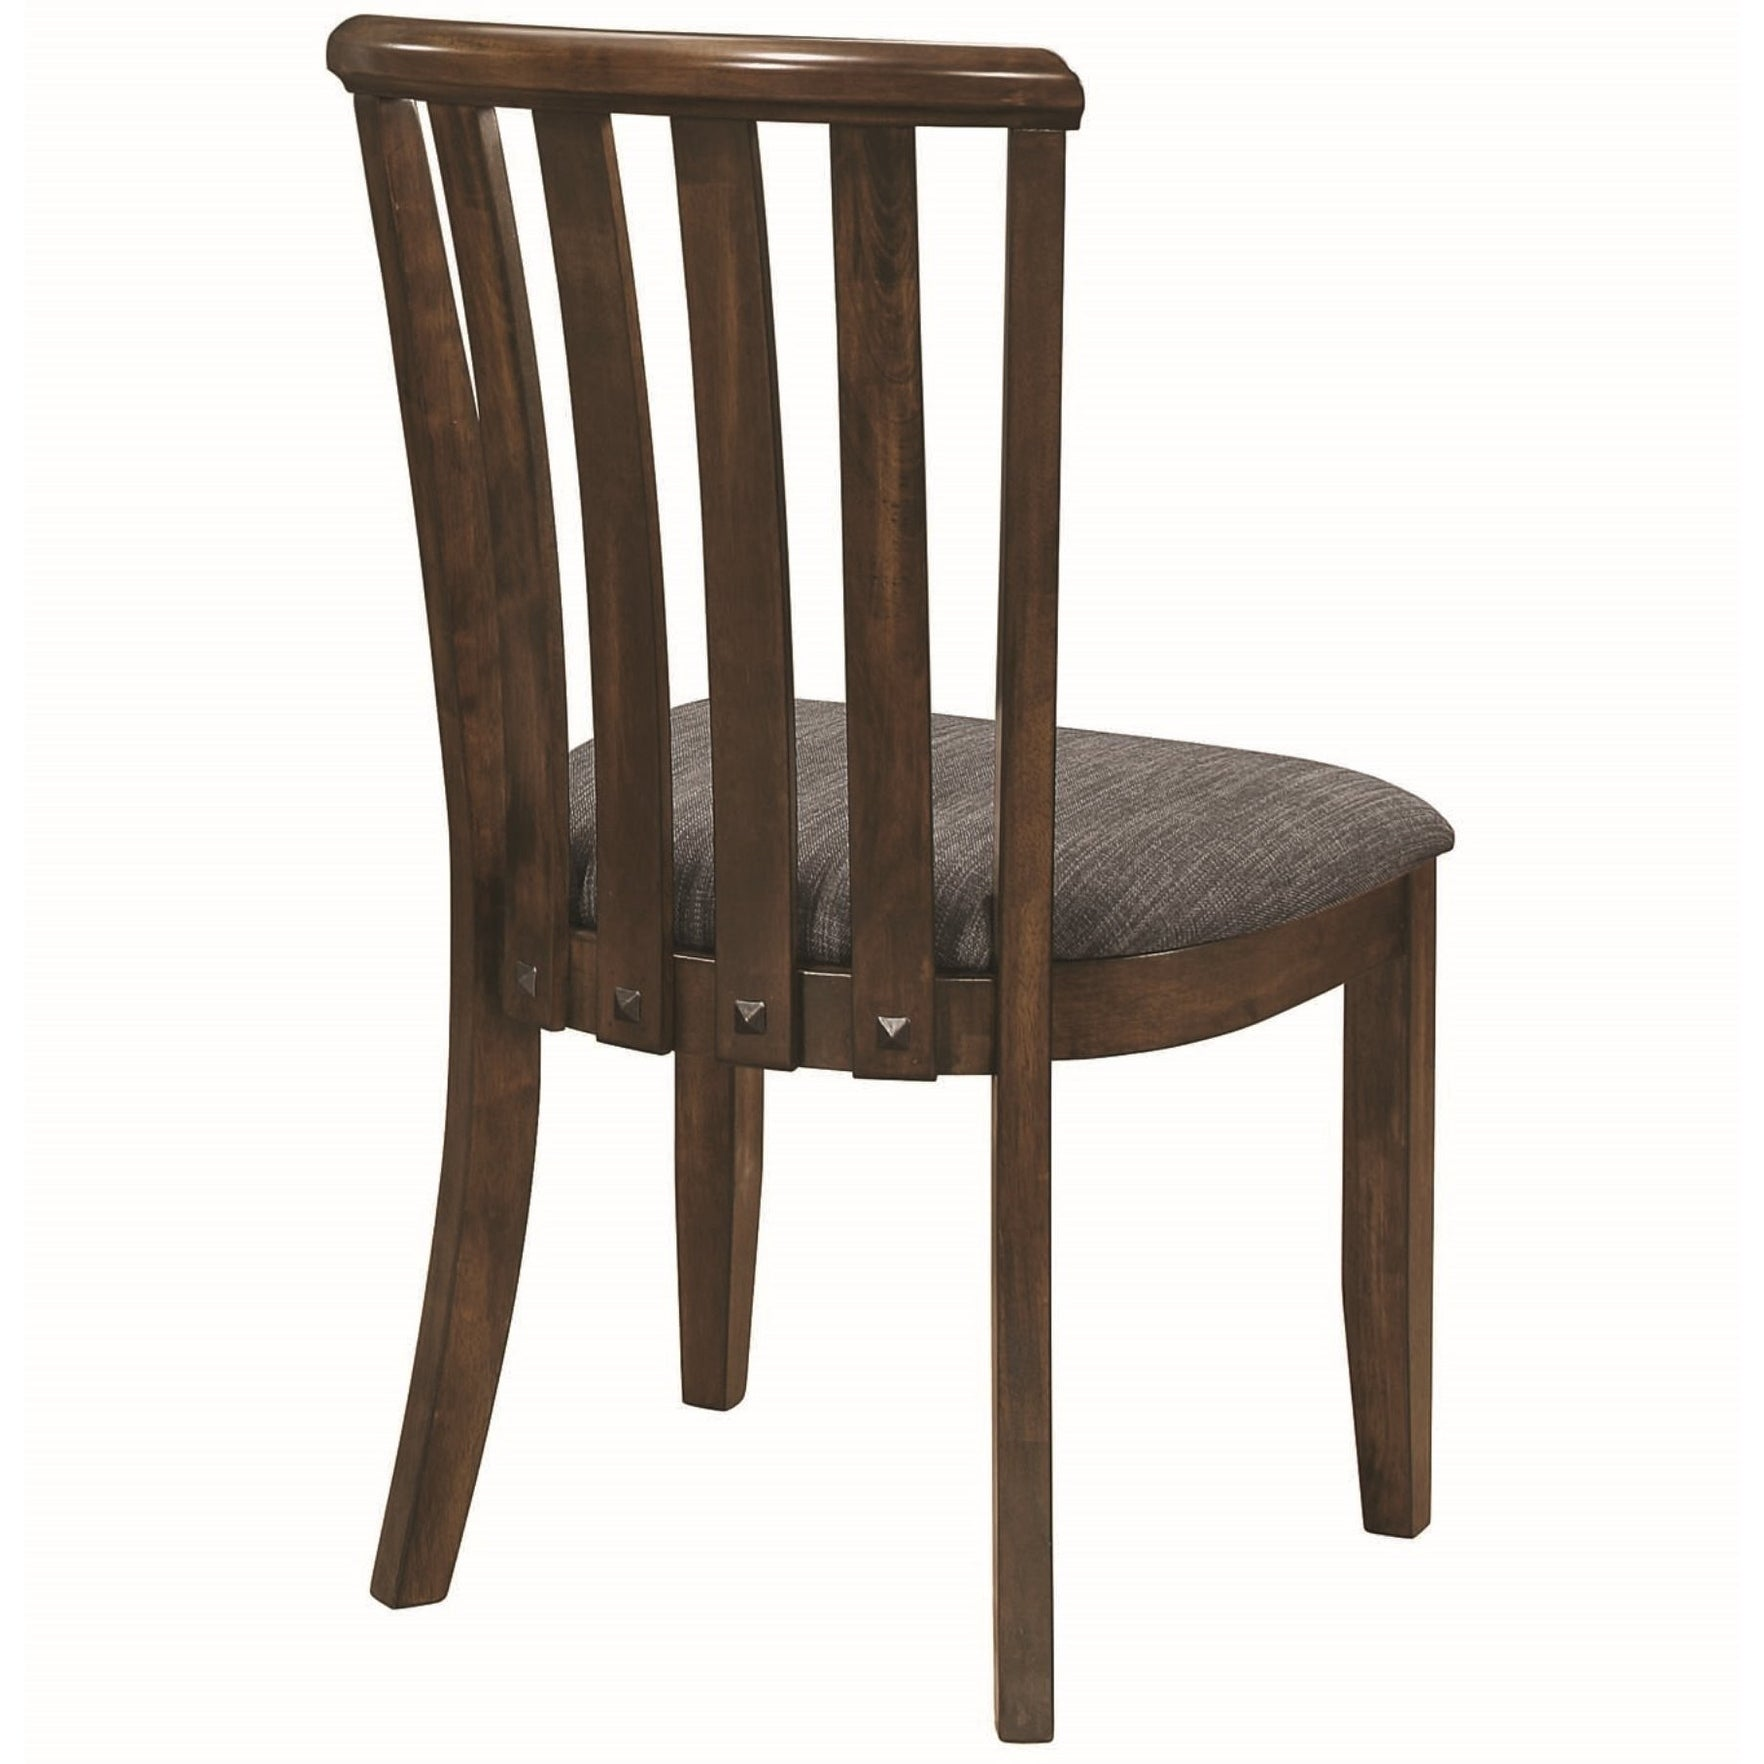 eedf178a0f68 Shop Mid Century Modern Sculpted Slat Back Design Dining Chairs (Set of 2)  - Free Shipping Today - Overstock.com - 24031378